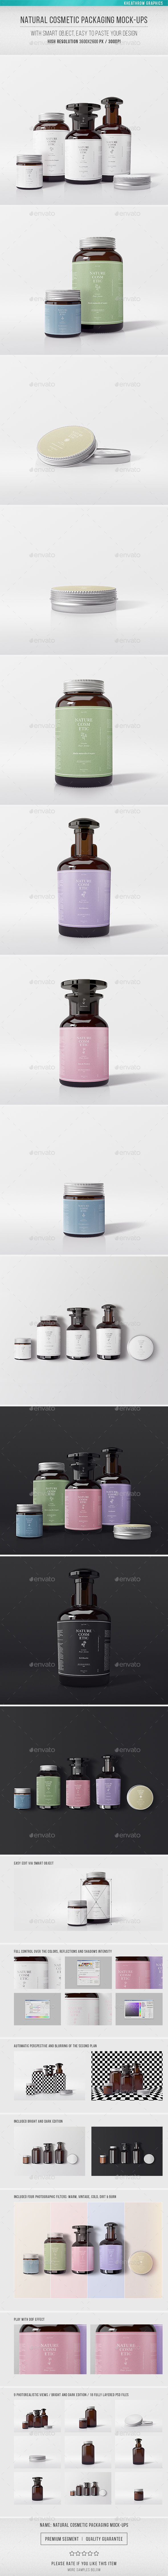 Natural Cosmetic Packaging Mock-Ups. Download here: http://graphicriver.net/item/natural-cosmetic-packaging-mockups/16639138?ref=ksioks